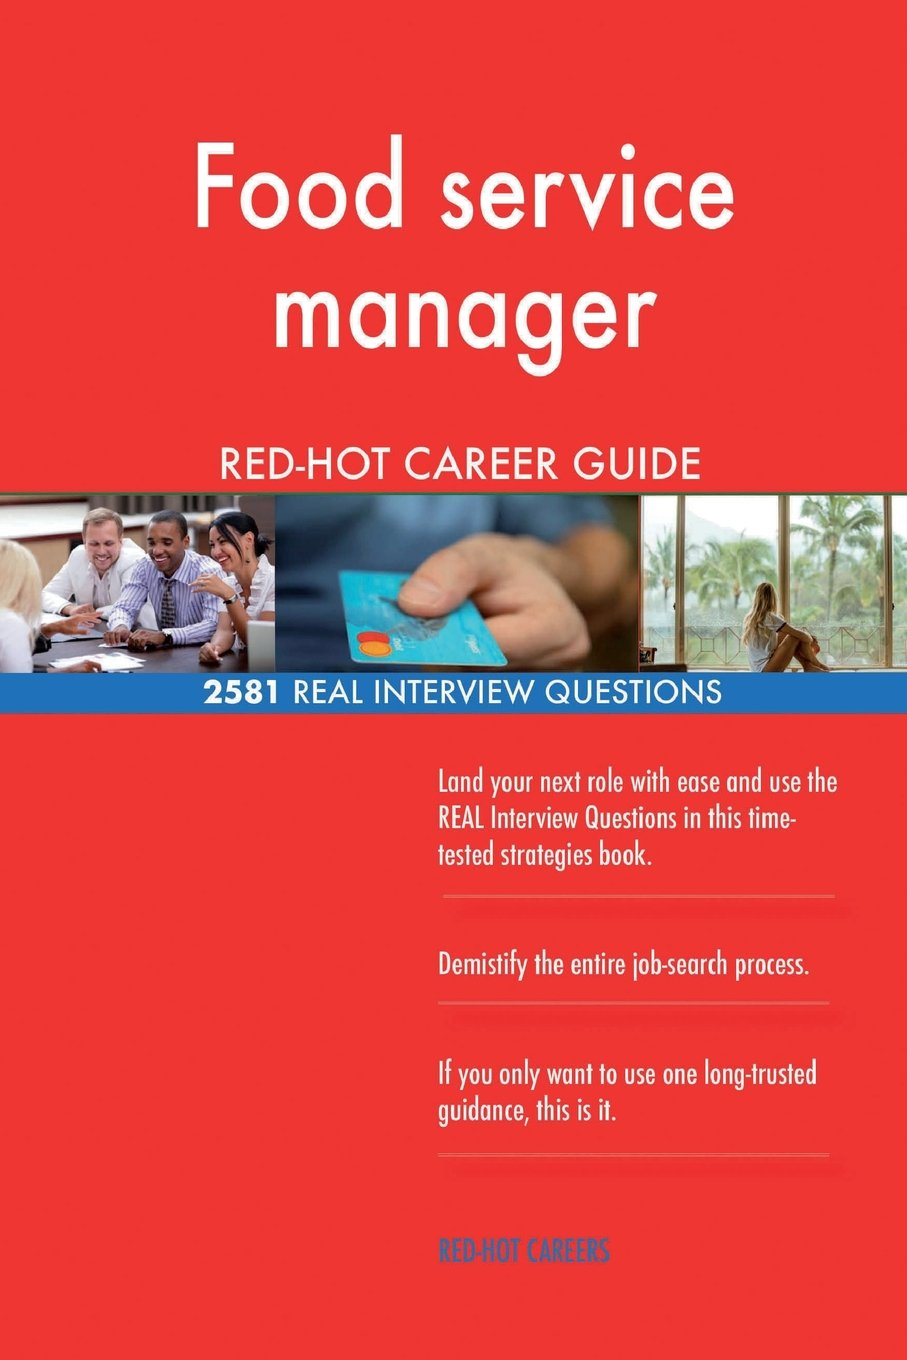 Food Service Manager RED HOT Career Guide 2581 REAL Interview Questions Paperback May 29 2018